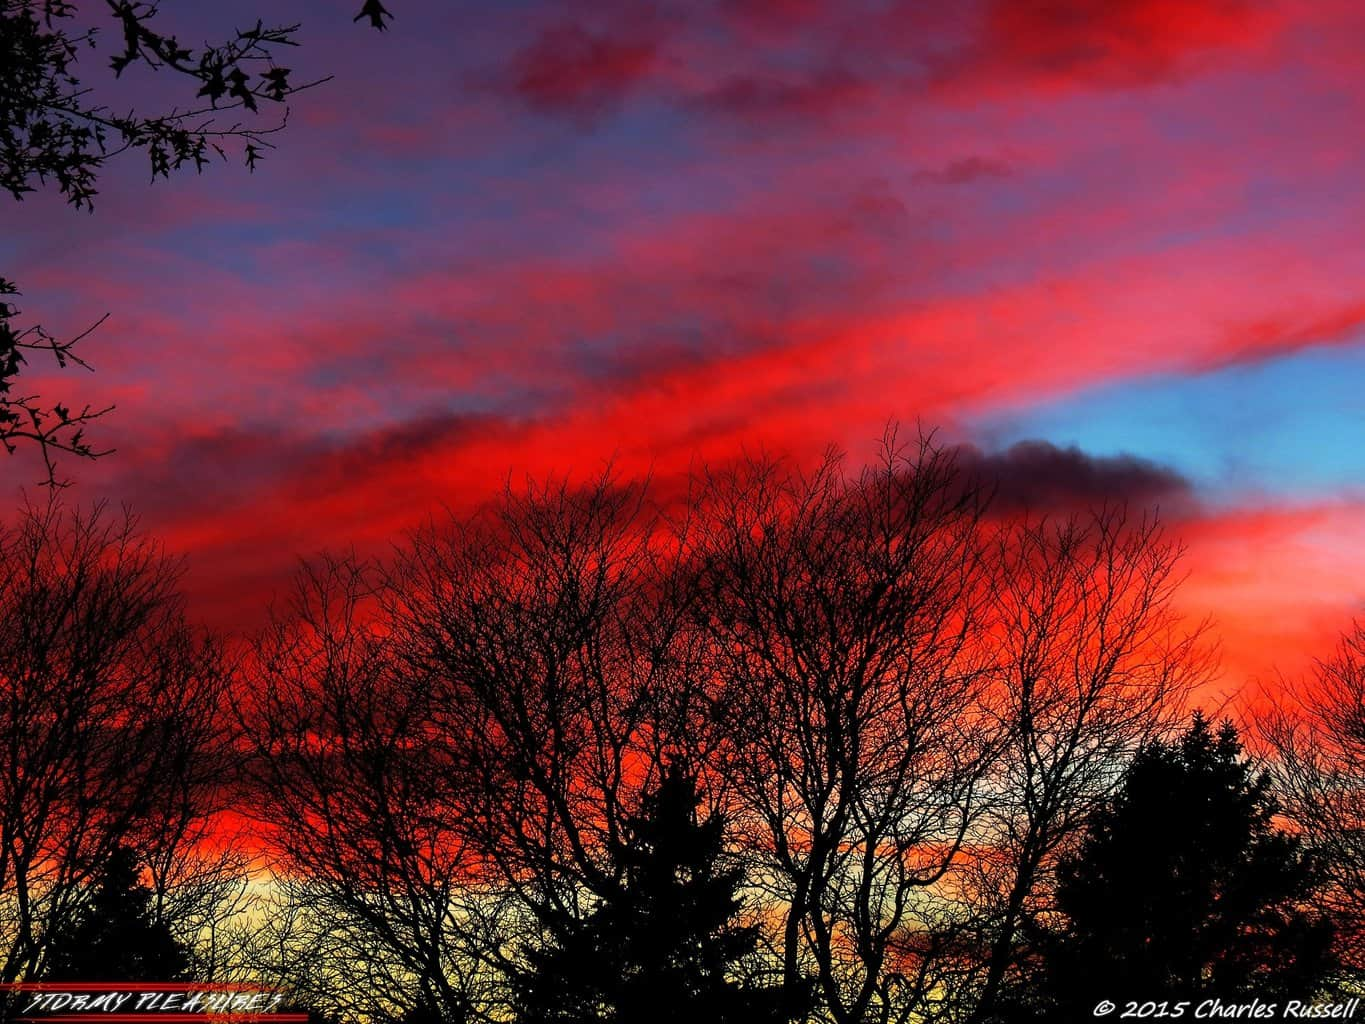 Well this was a nice surprise! Just last evening here in Michigan! Gorgeous sunset!! 11/14/15 One of the best I have seen on awhile!